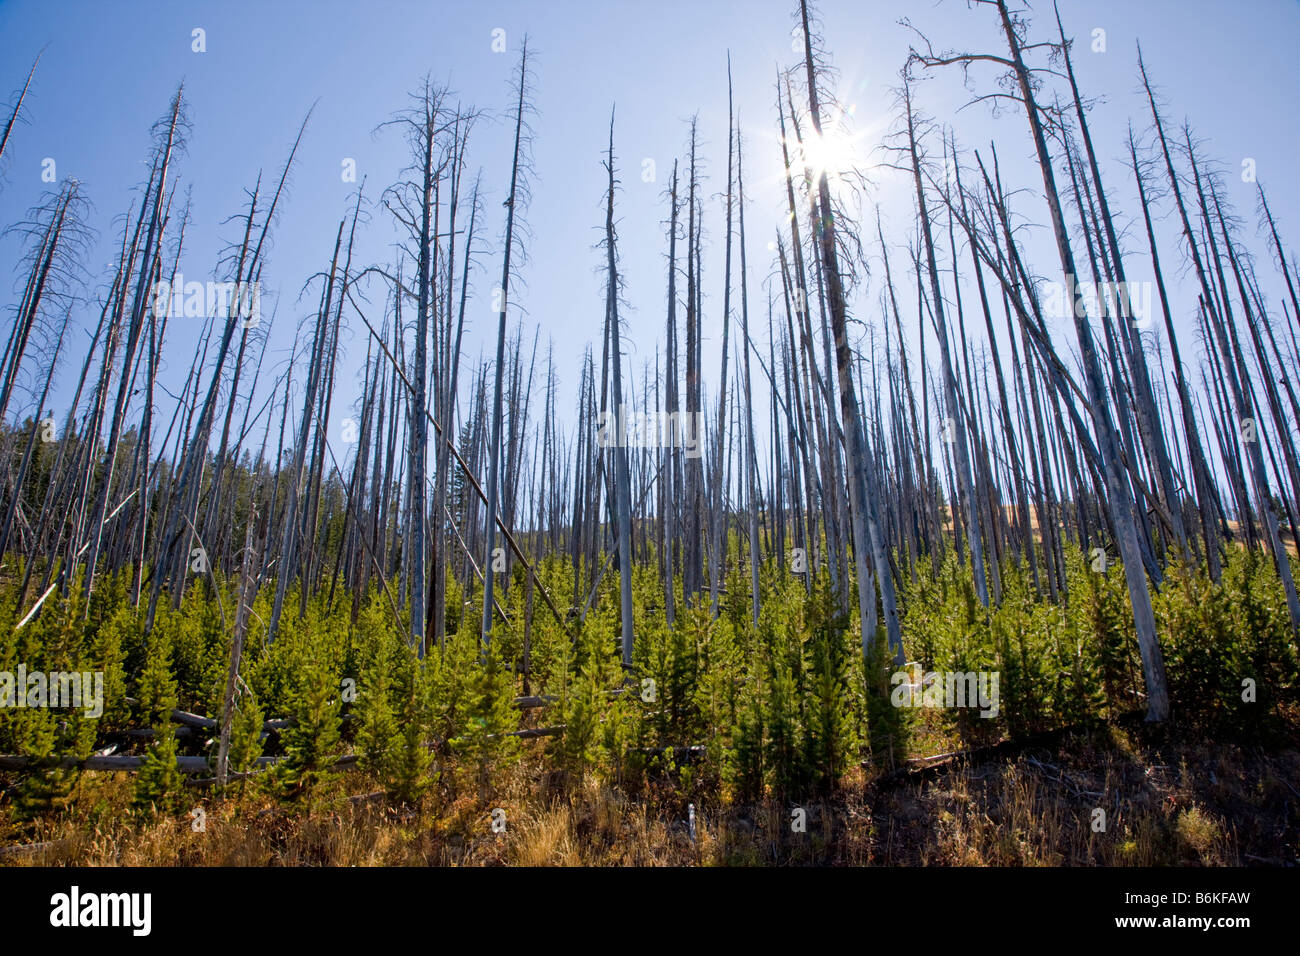 Regeneration of trees that burned in forest fires near Dunraven Pass Yellowstone National Park Wyoming USA - Stock Image